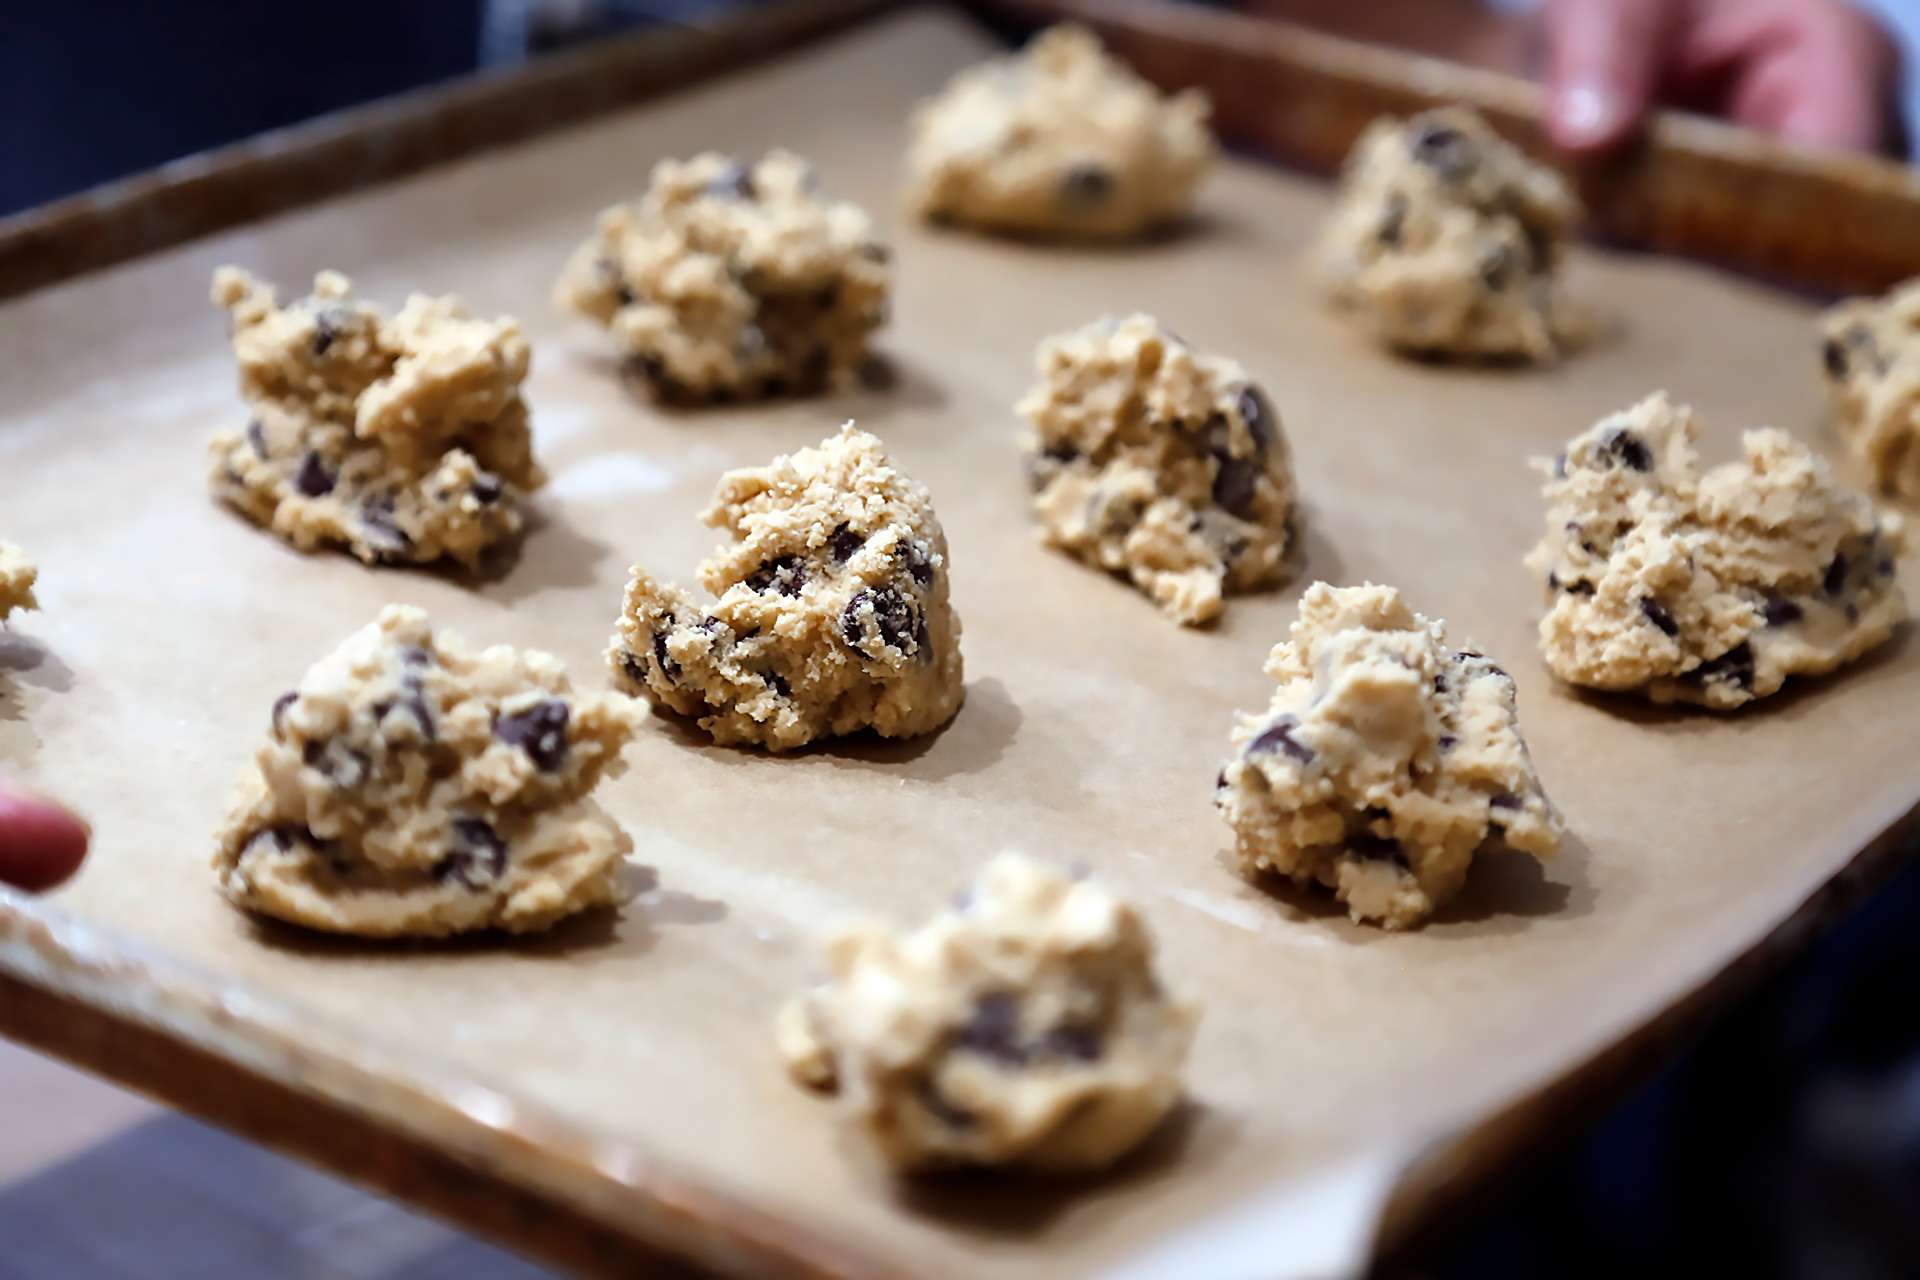 Drop the dough by heaping tablespoonfuls onto the baking sheet, spacing them evenly.